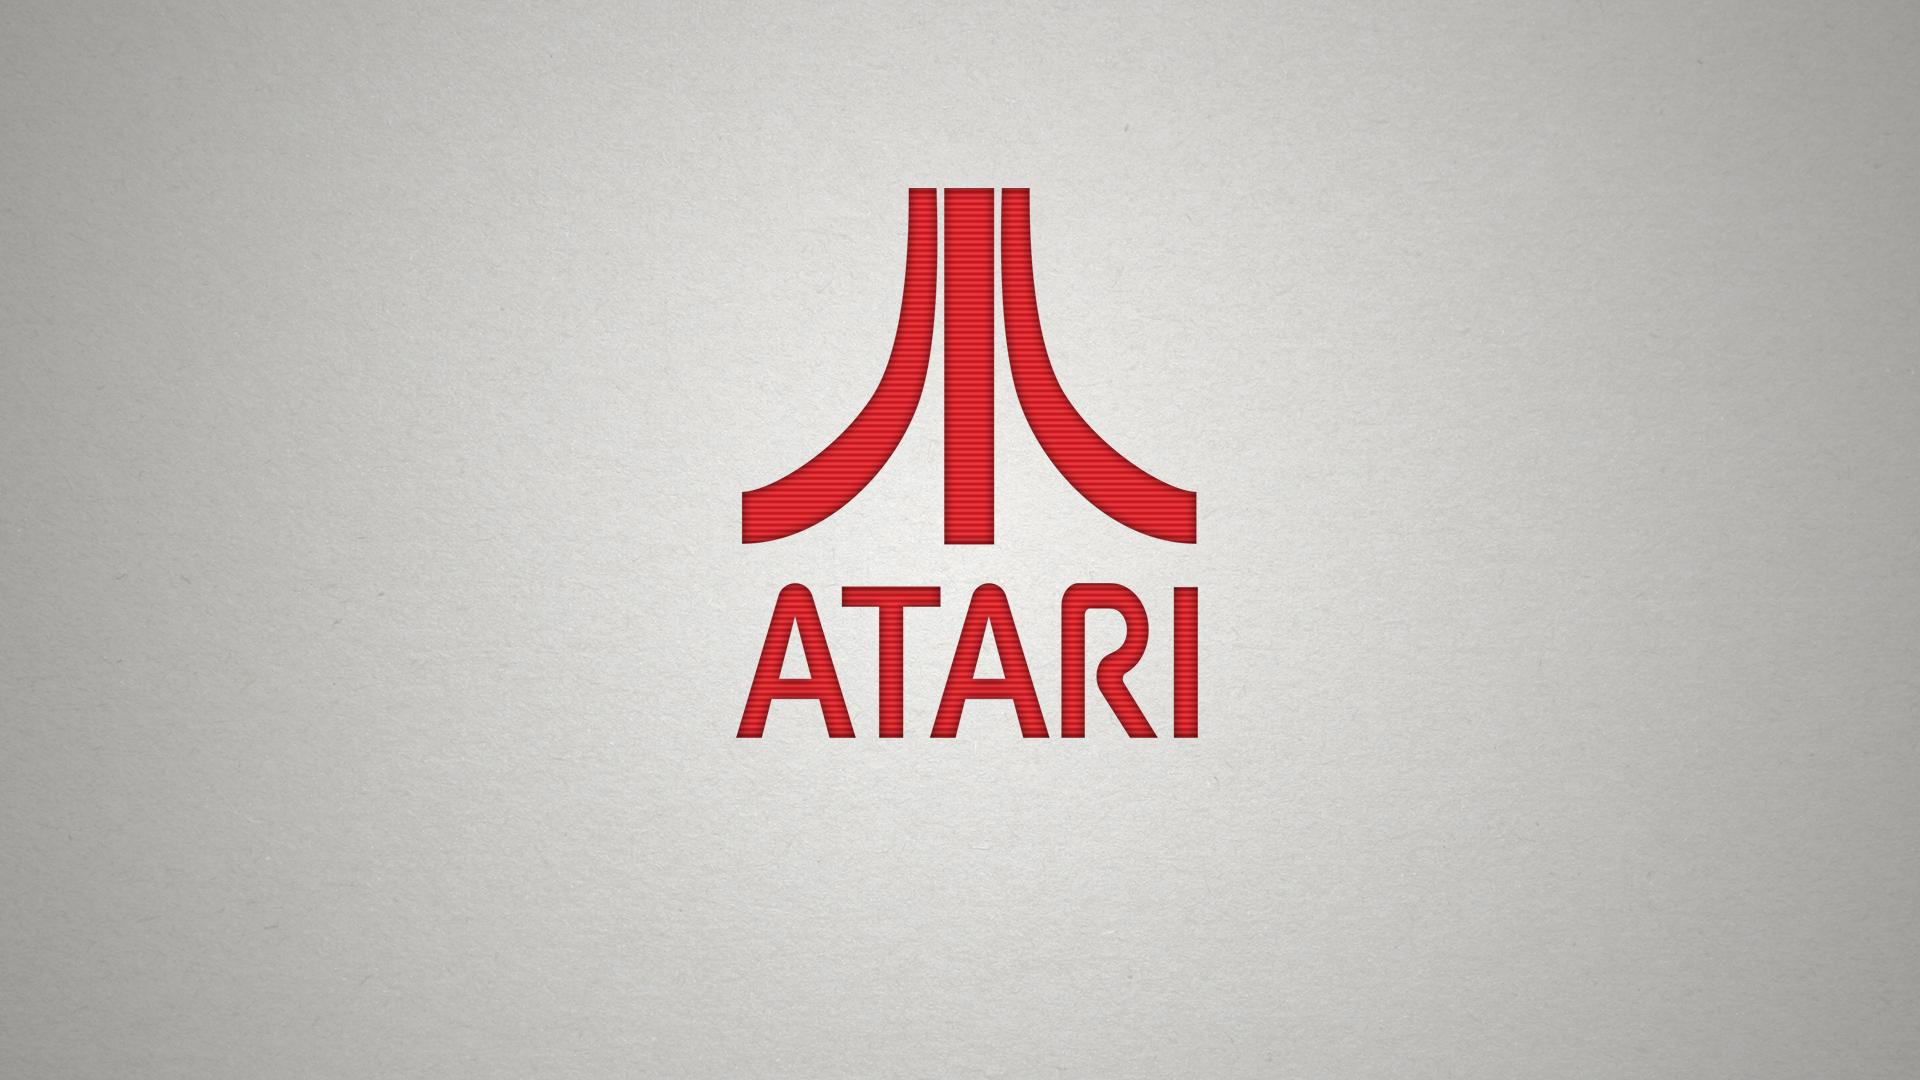 Atari Computer Wallpapers, Desktop Backgrounds 1920x1080 Id: 456345